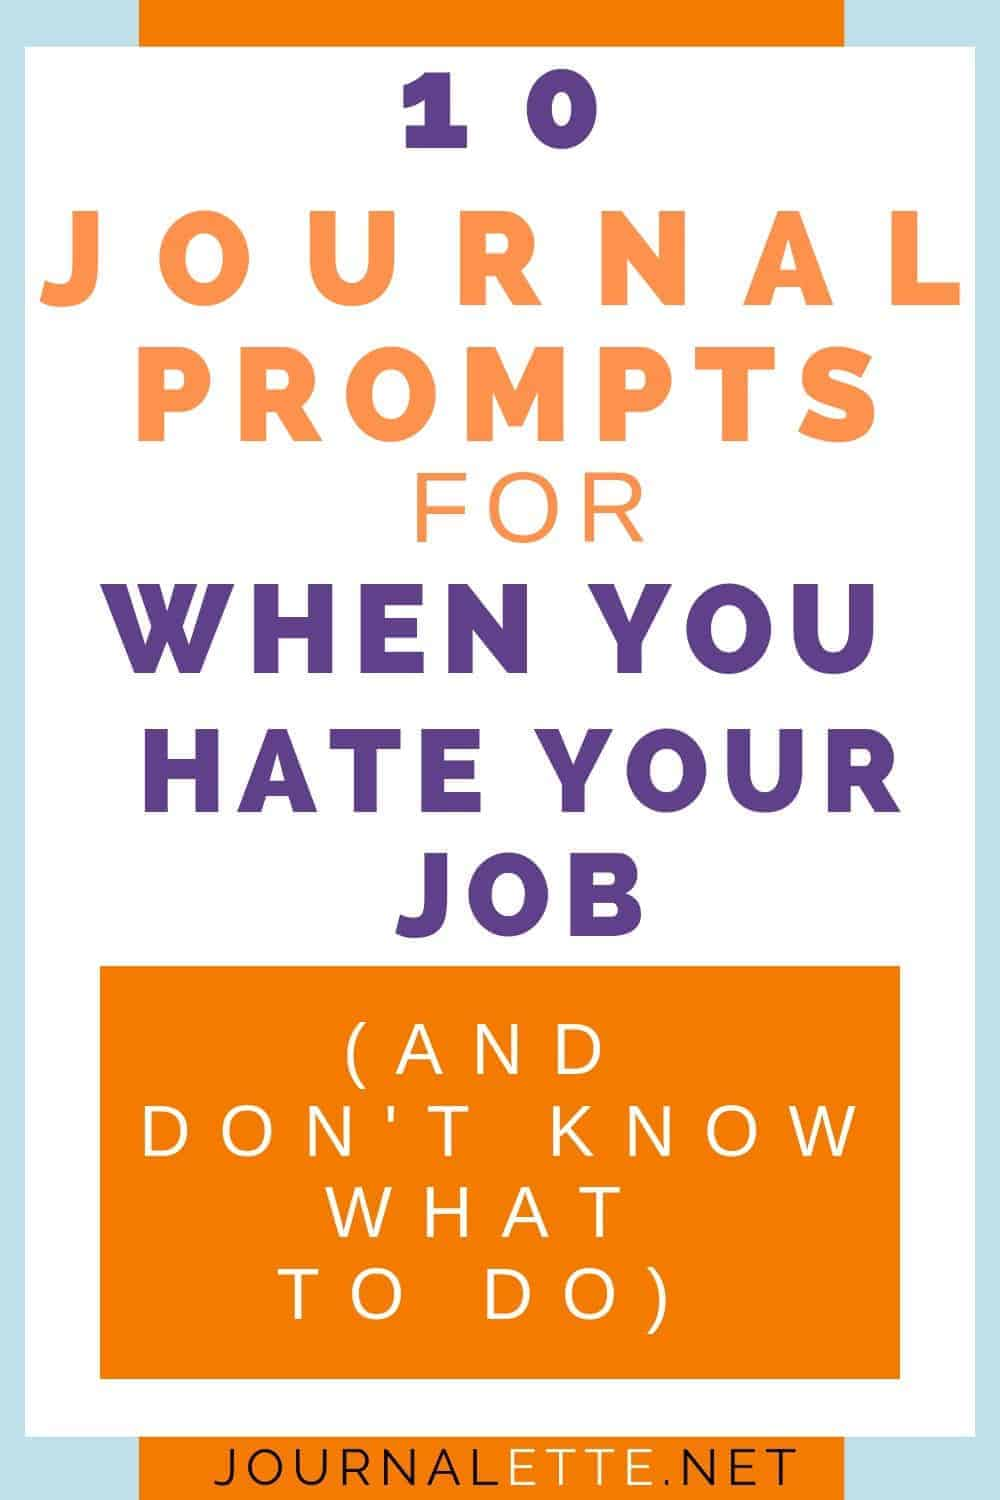 Text 10 Journal prompts when you hate your job and don't know what to do